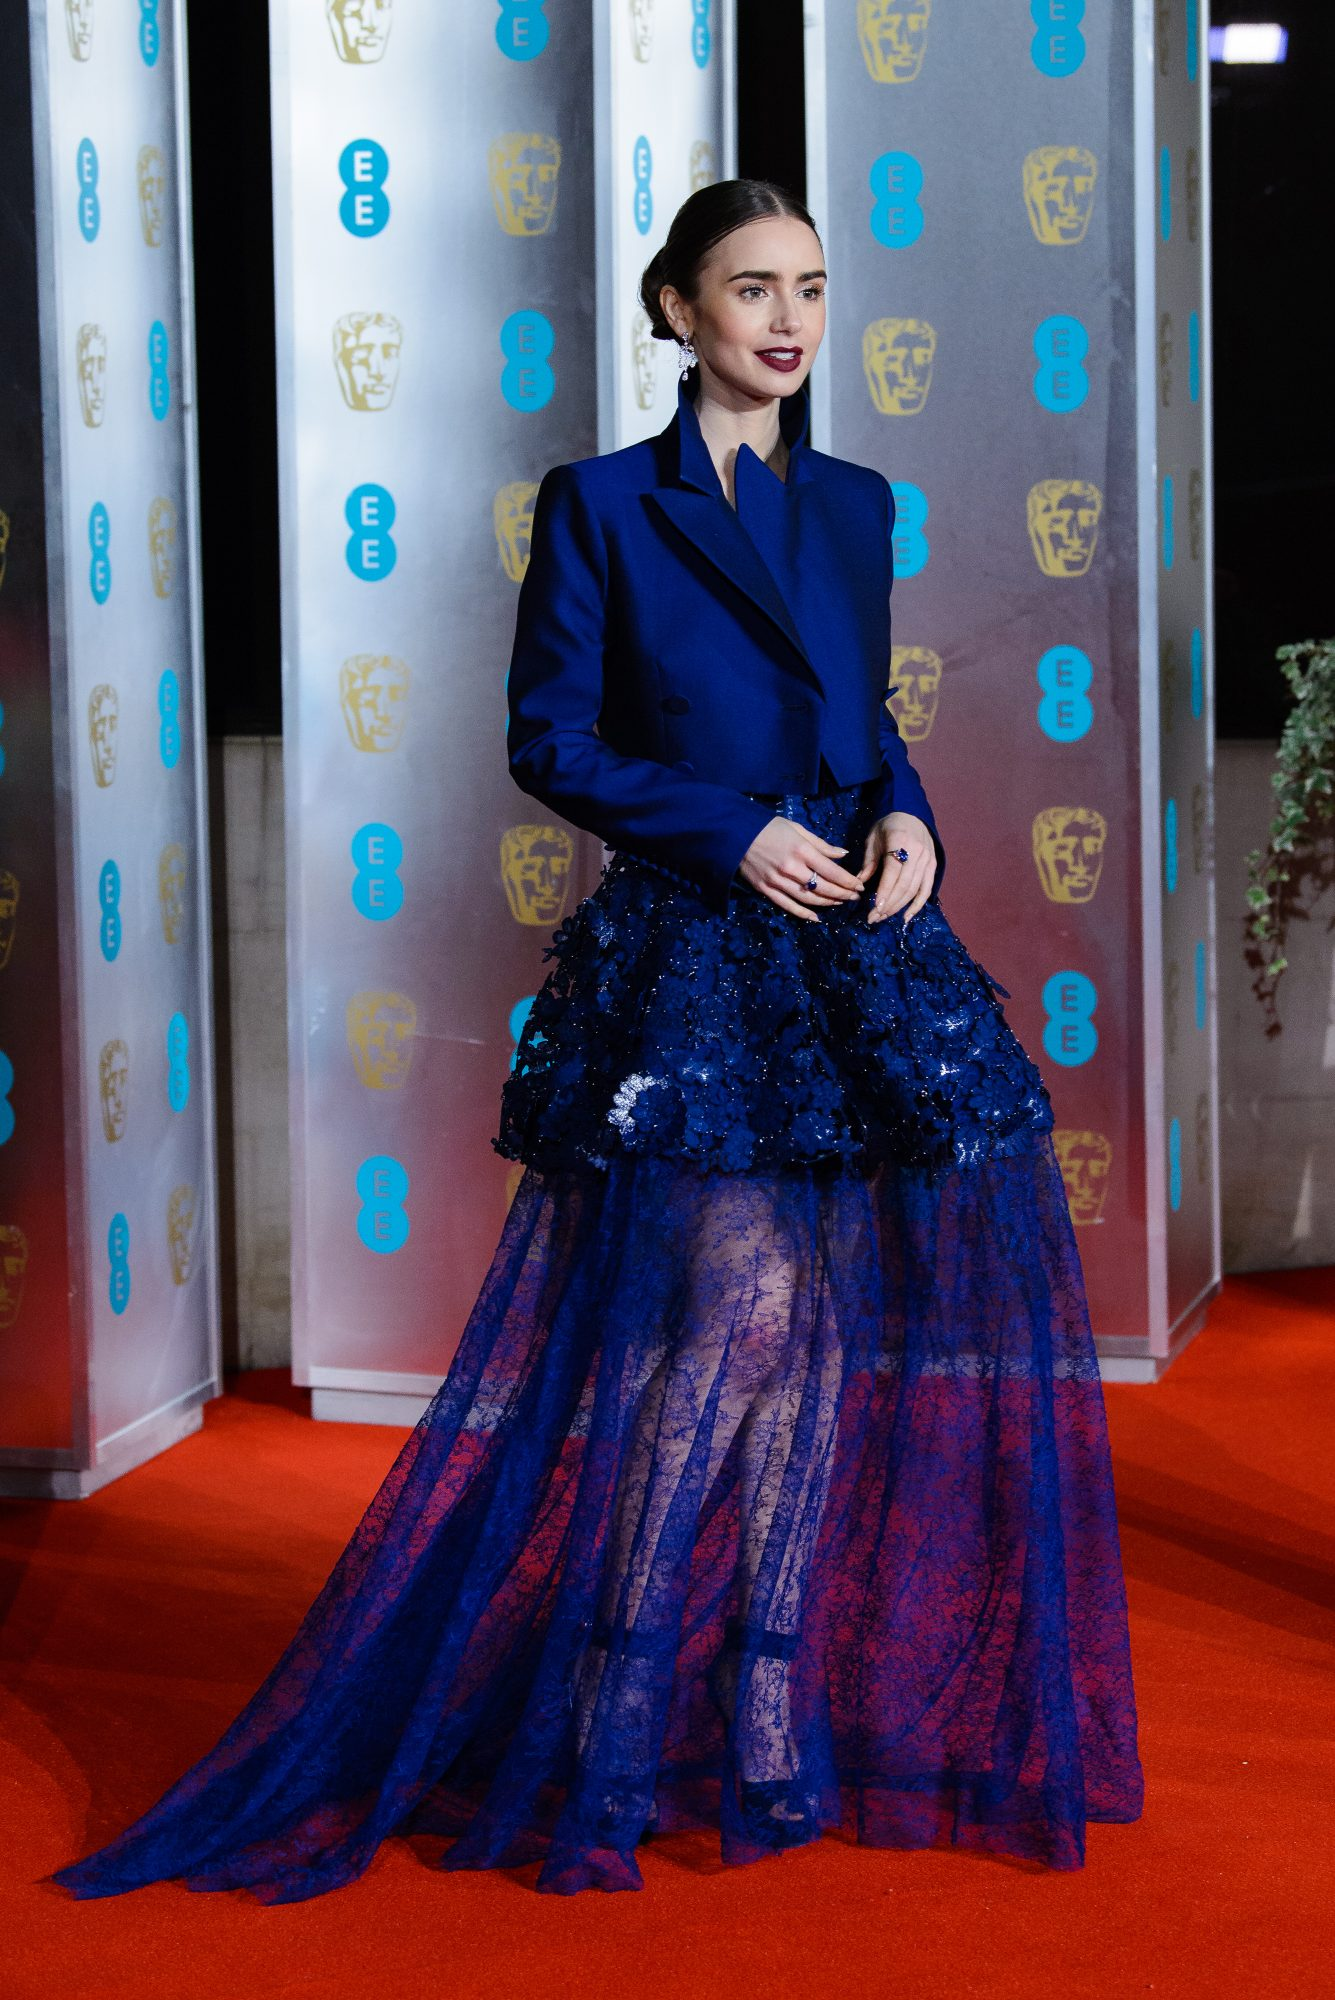 See The Best Gowns From the 2019 BAFTA Awards